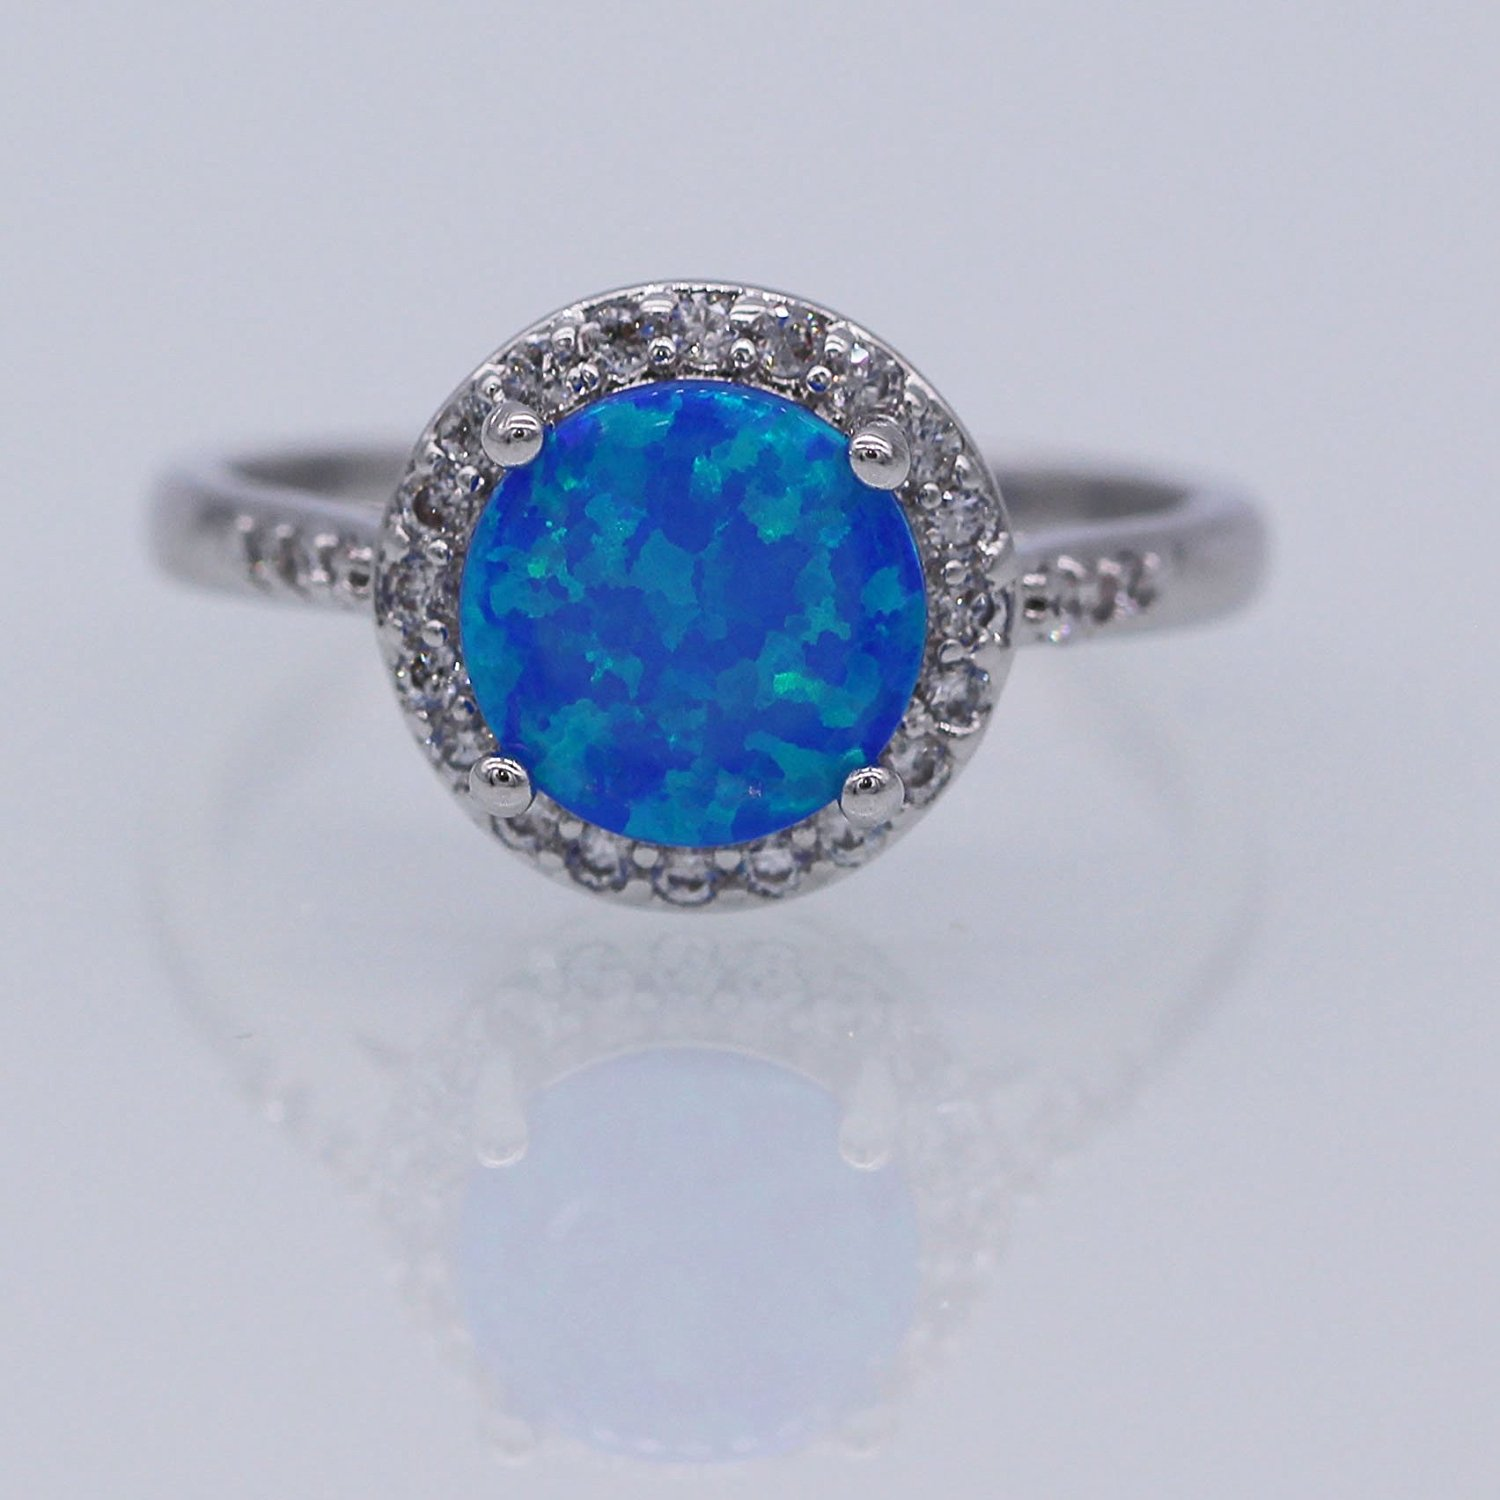 dark fullxfull rings gallery ring engagement listing il photo diamond rare blue graded apprasied size and